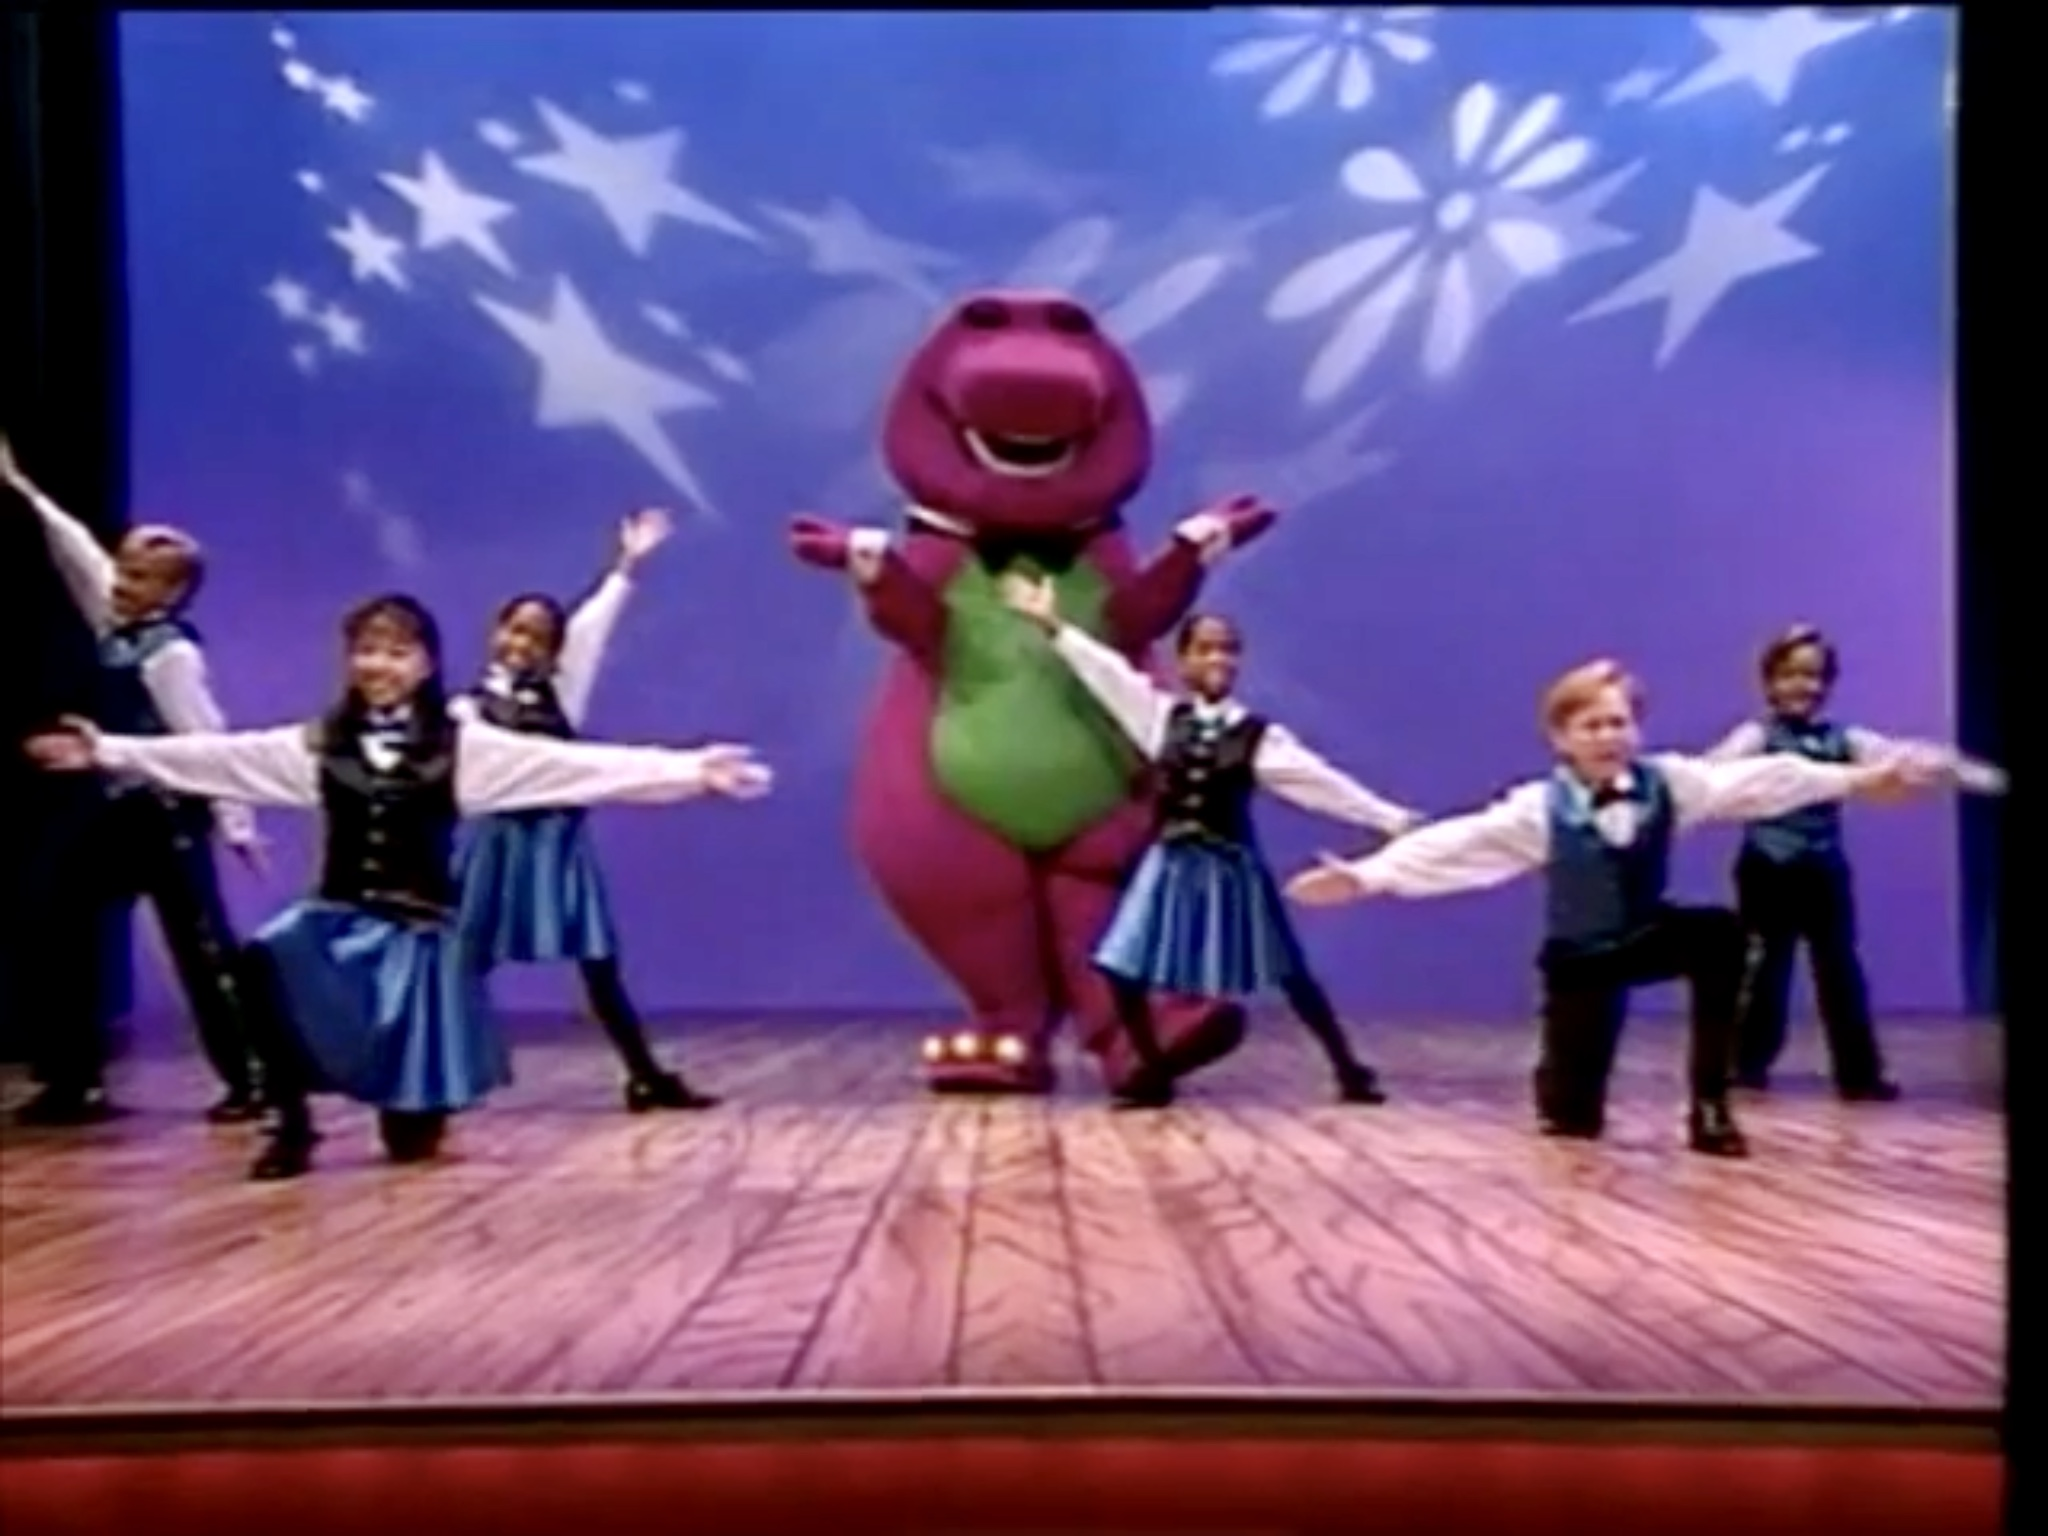 Barneys Talent Show Barney Wiki FANDOM Powered By Wikia - Concert barney wiki